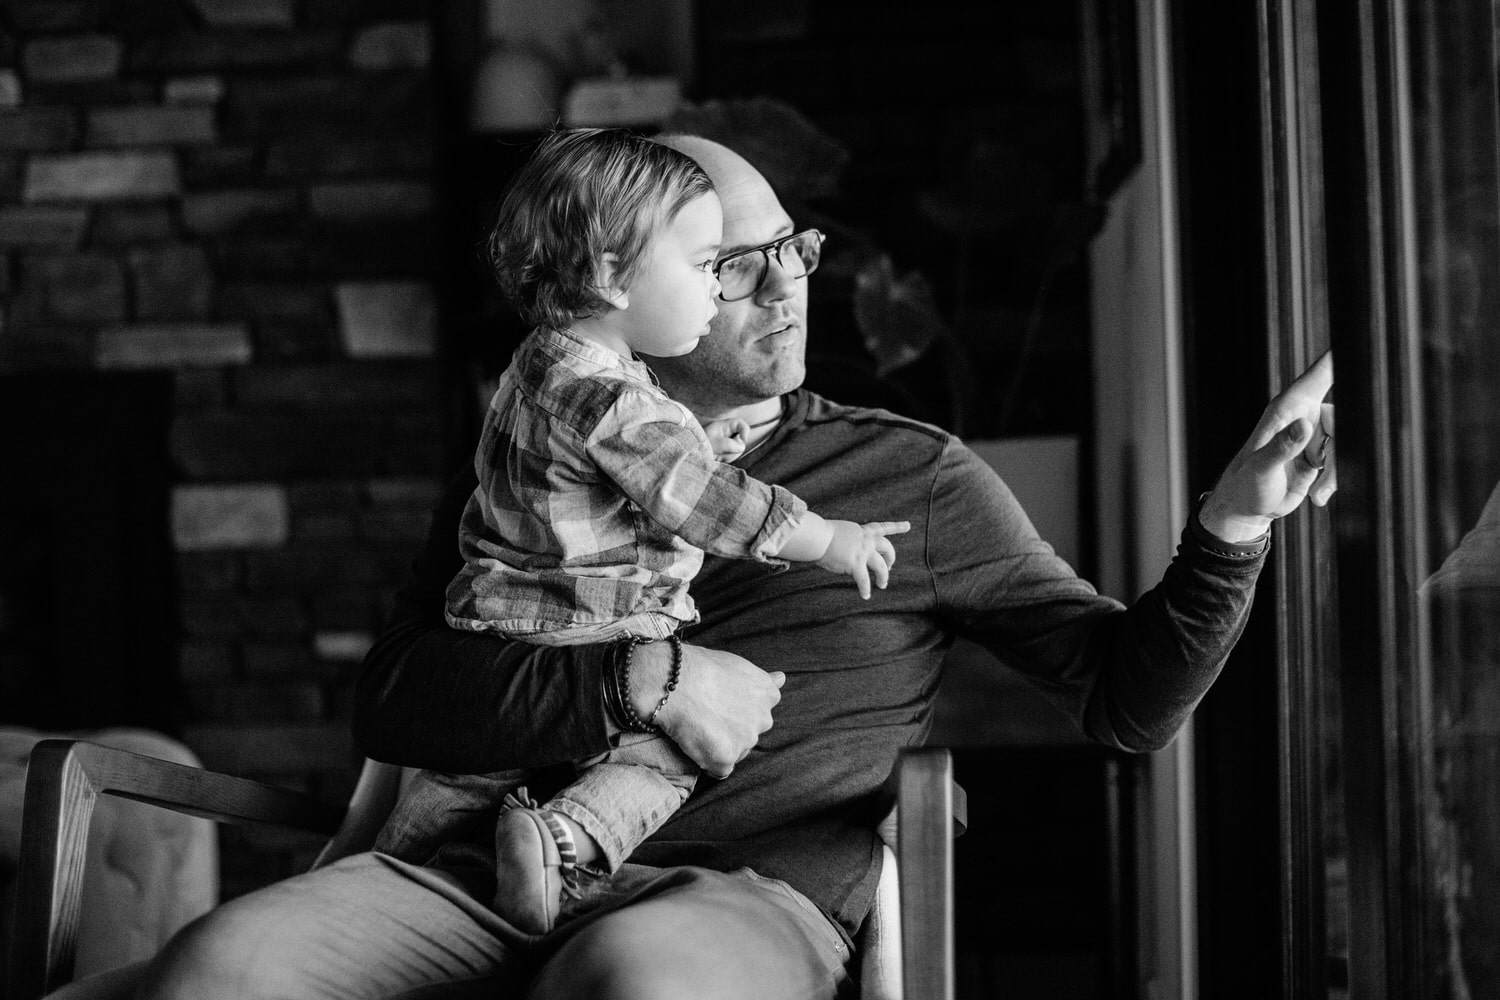 A dad holding his toddler son as they talk and look outside the window in their home